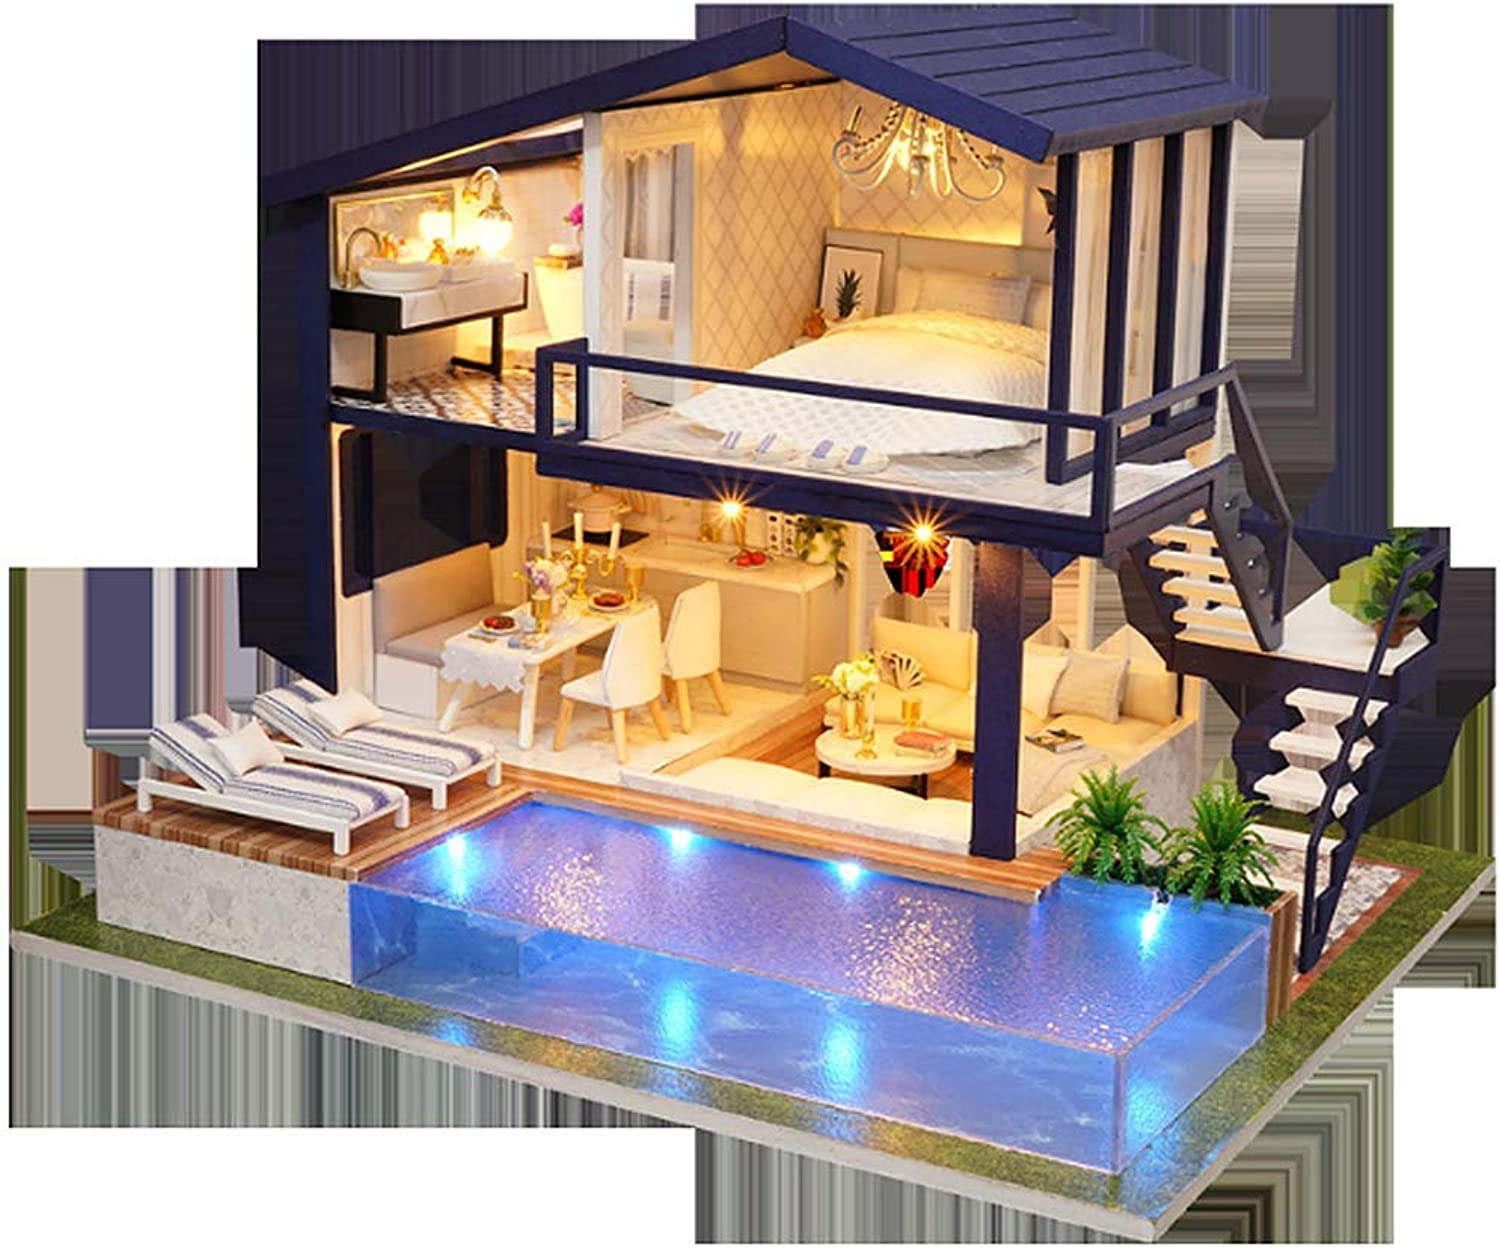 QHWJ Wooden Miniature Doll House, Diy Cabin Time Apartment Wooden House Puzzle Handmade Villa Model Doll House Creative Gift